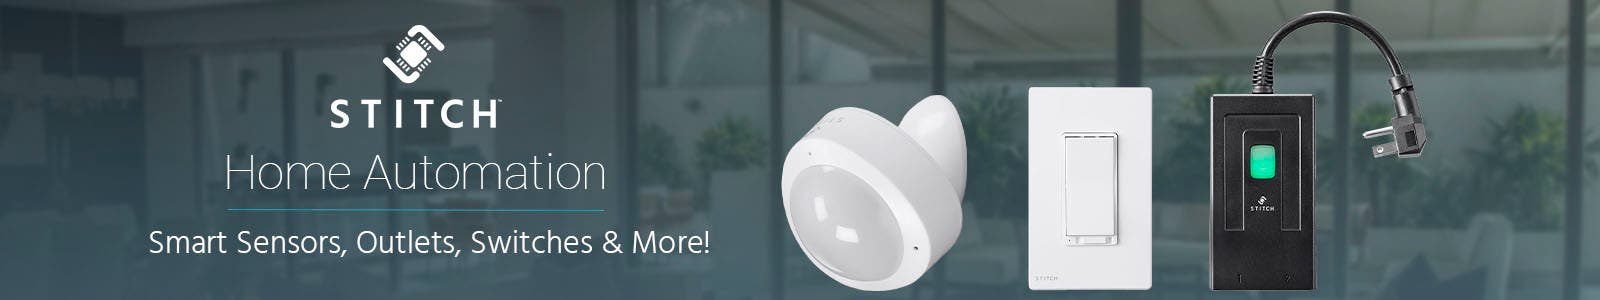 STITCH (logo)Home AutomationSmart Sensors, Outlets, Switches & More!Shop Now >